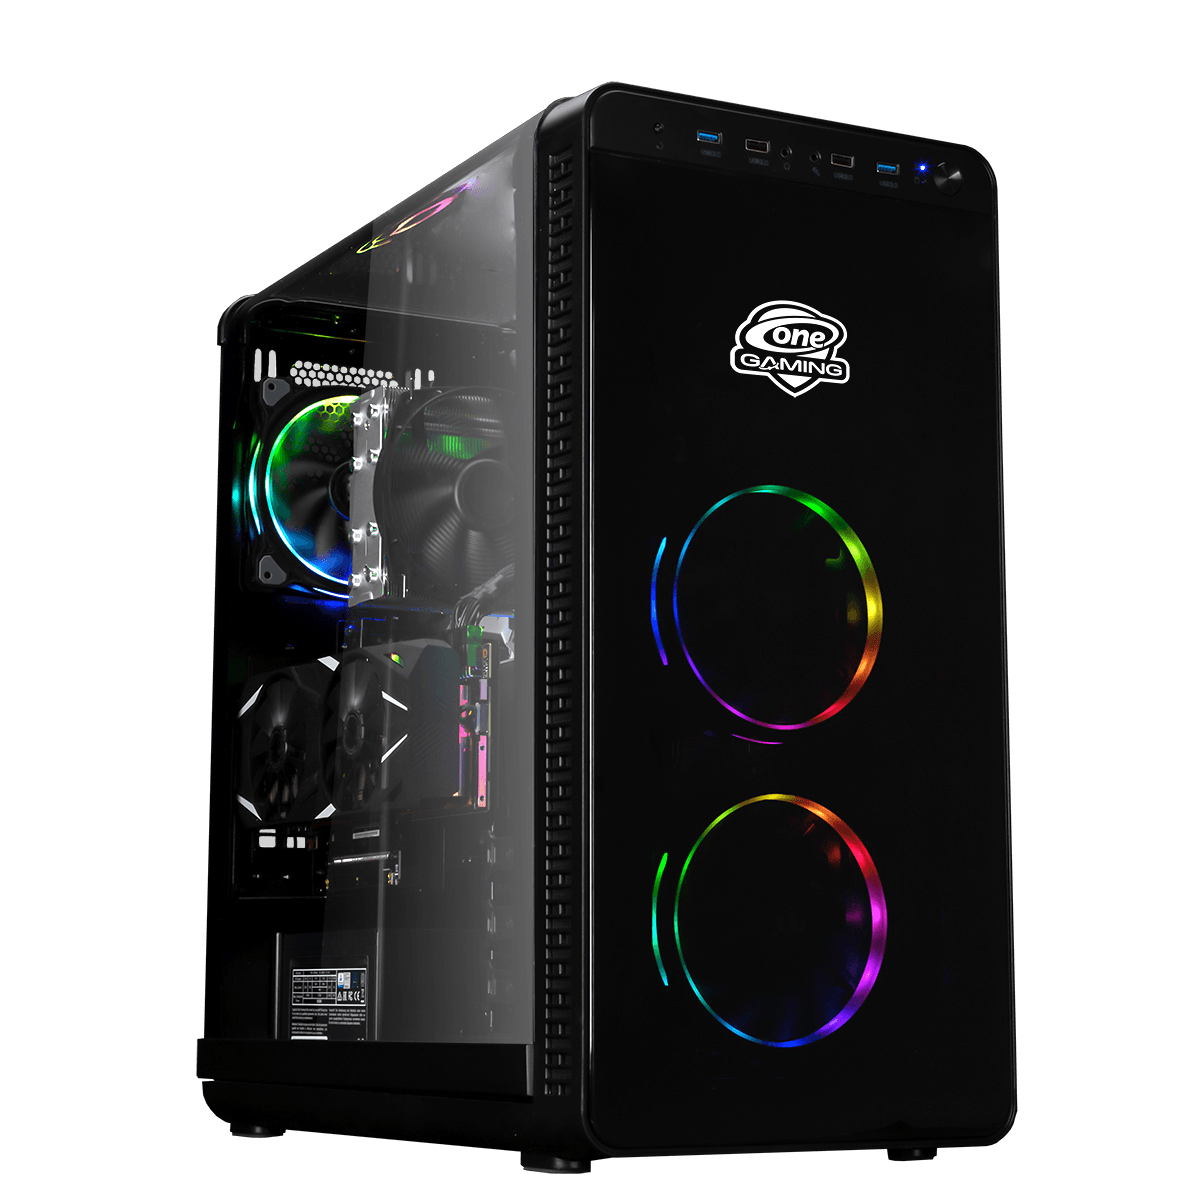 frei-konfigurierbarer-high-end-gaming-pc-one-gaming-high-end-elite-an03